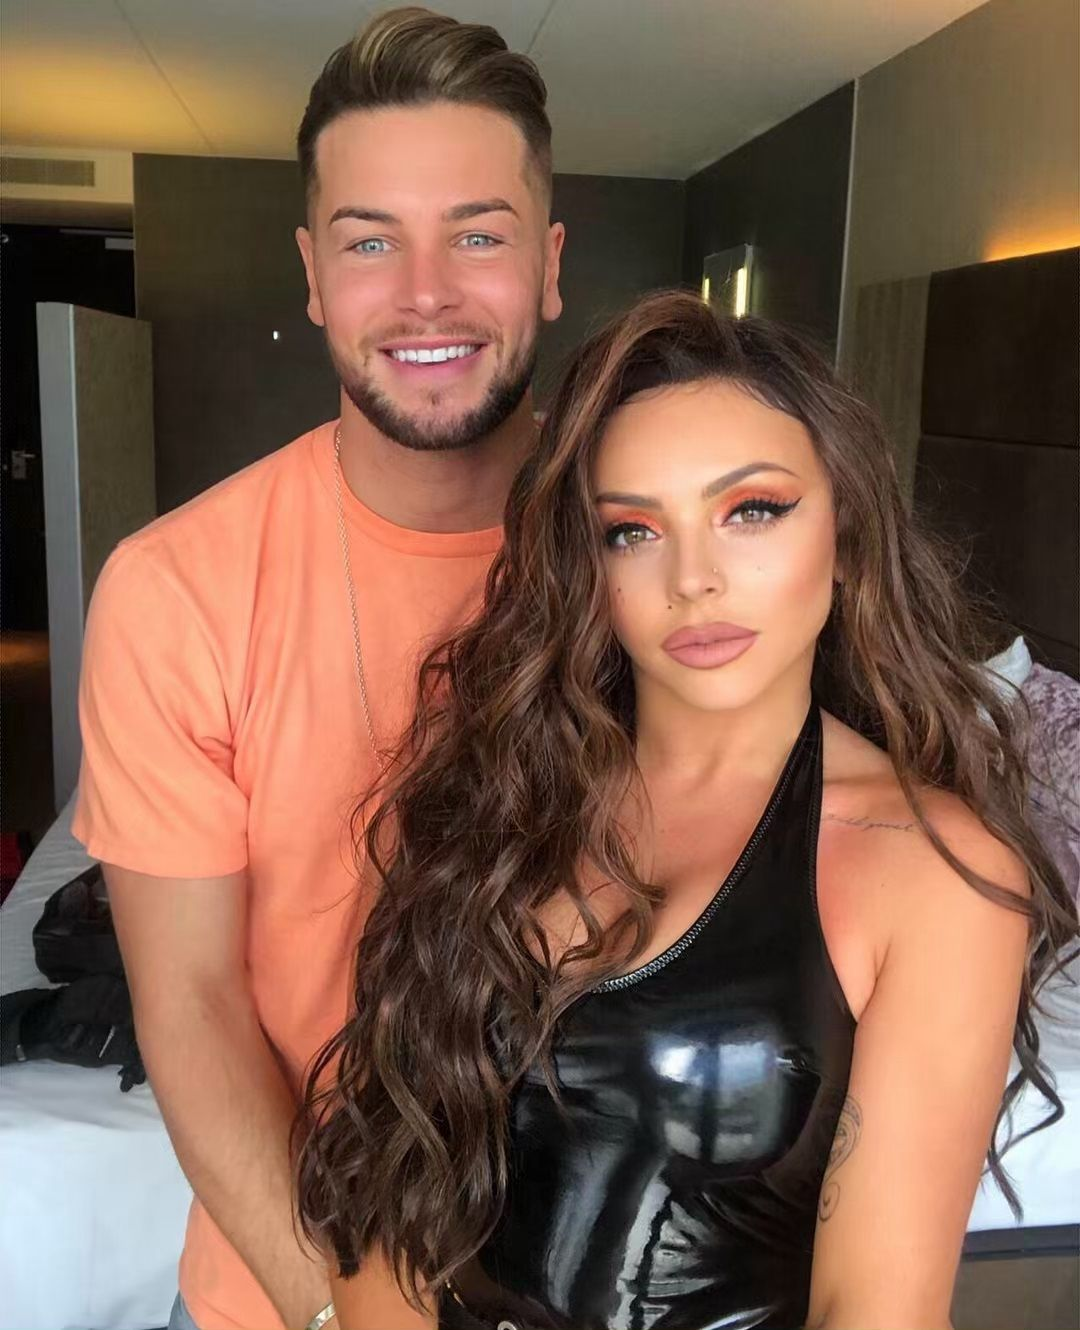 Image may contain: Jesy Nelson documentary, Jesy Nelson, 2019, boyfriend, Chris Hughes, Love Island, Little Mix, Odd One Out, documentary, suicide attempt, online, trolling, social media, comments, mental health, release date, trailer, BBC One, BBC Three, Hair, Female, Photography, Photo, Portrait, Clothing, Apparel, Face, Person, Human